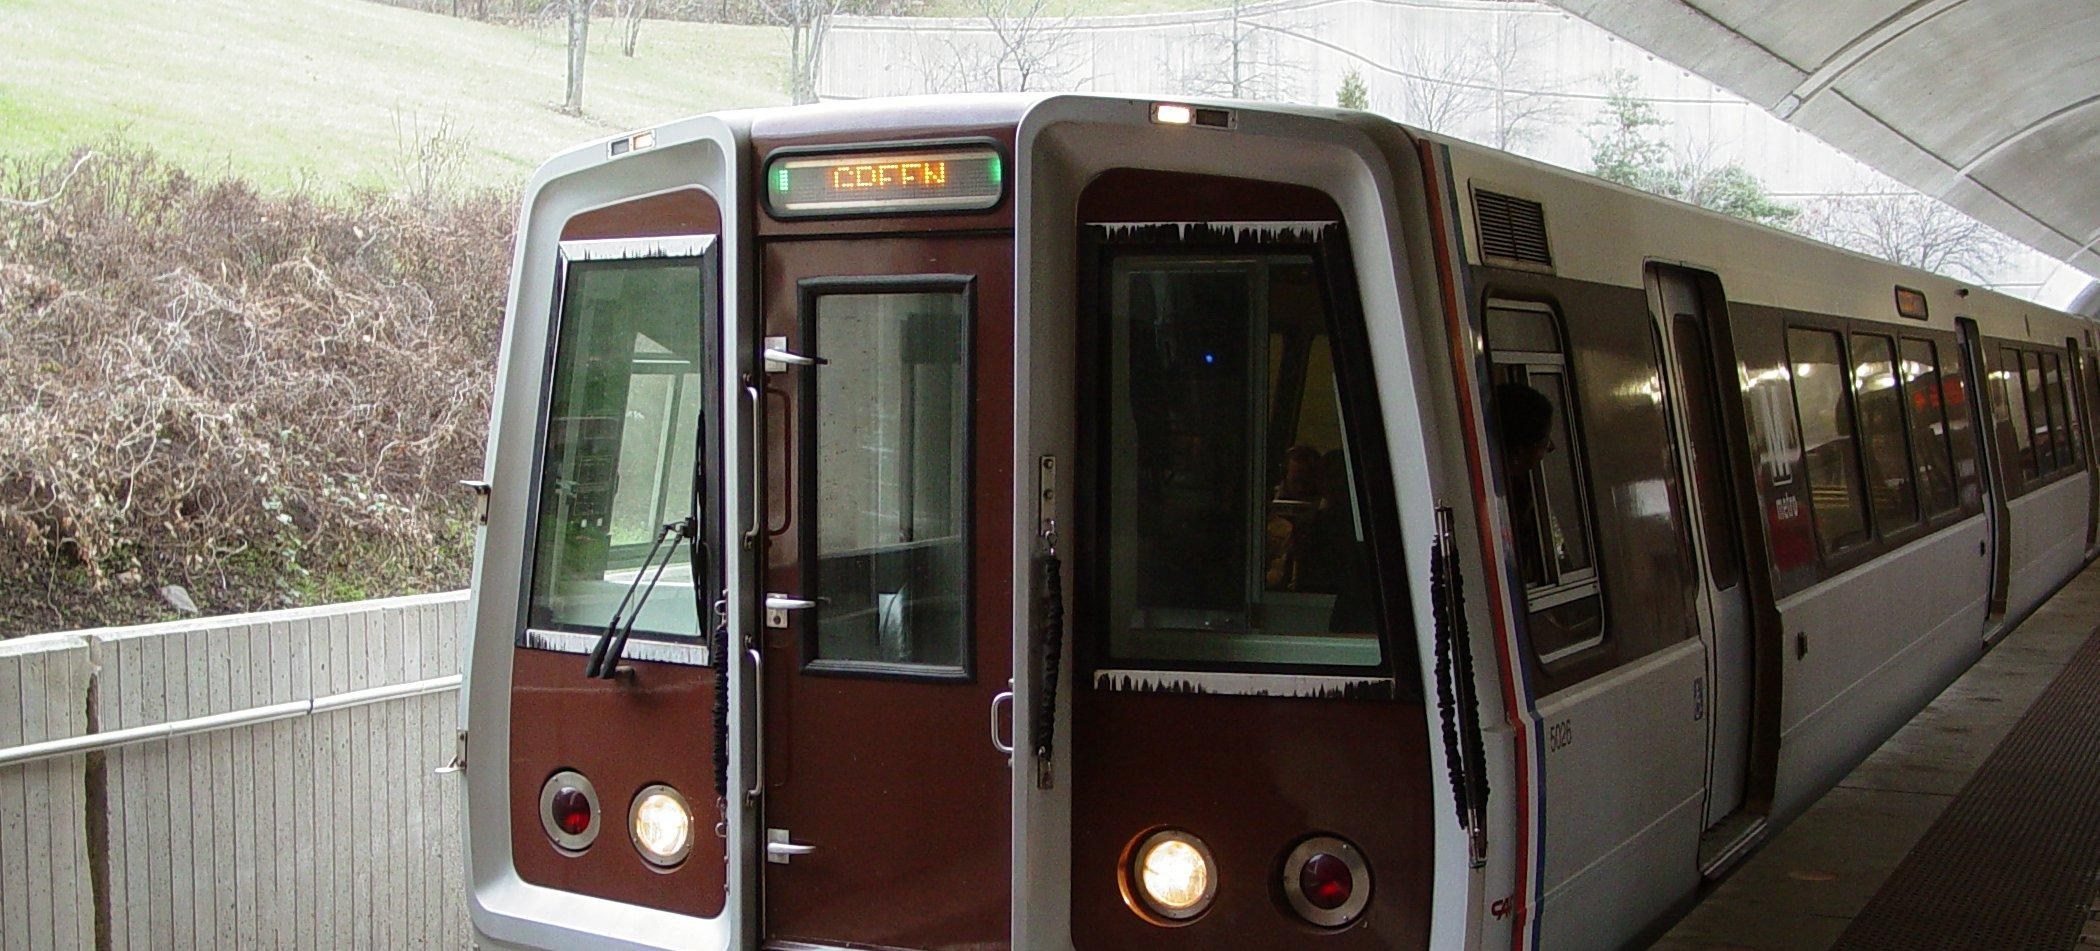 Washington Mero, CAF 5026 railcar leads a Green Line train to Greenbelt at Fort Totten station lower level in Washington DC. (Credit: Ben Schumin, used via CC BY-SA 3.0)